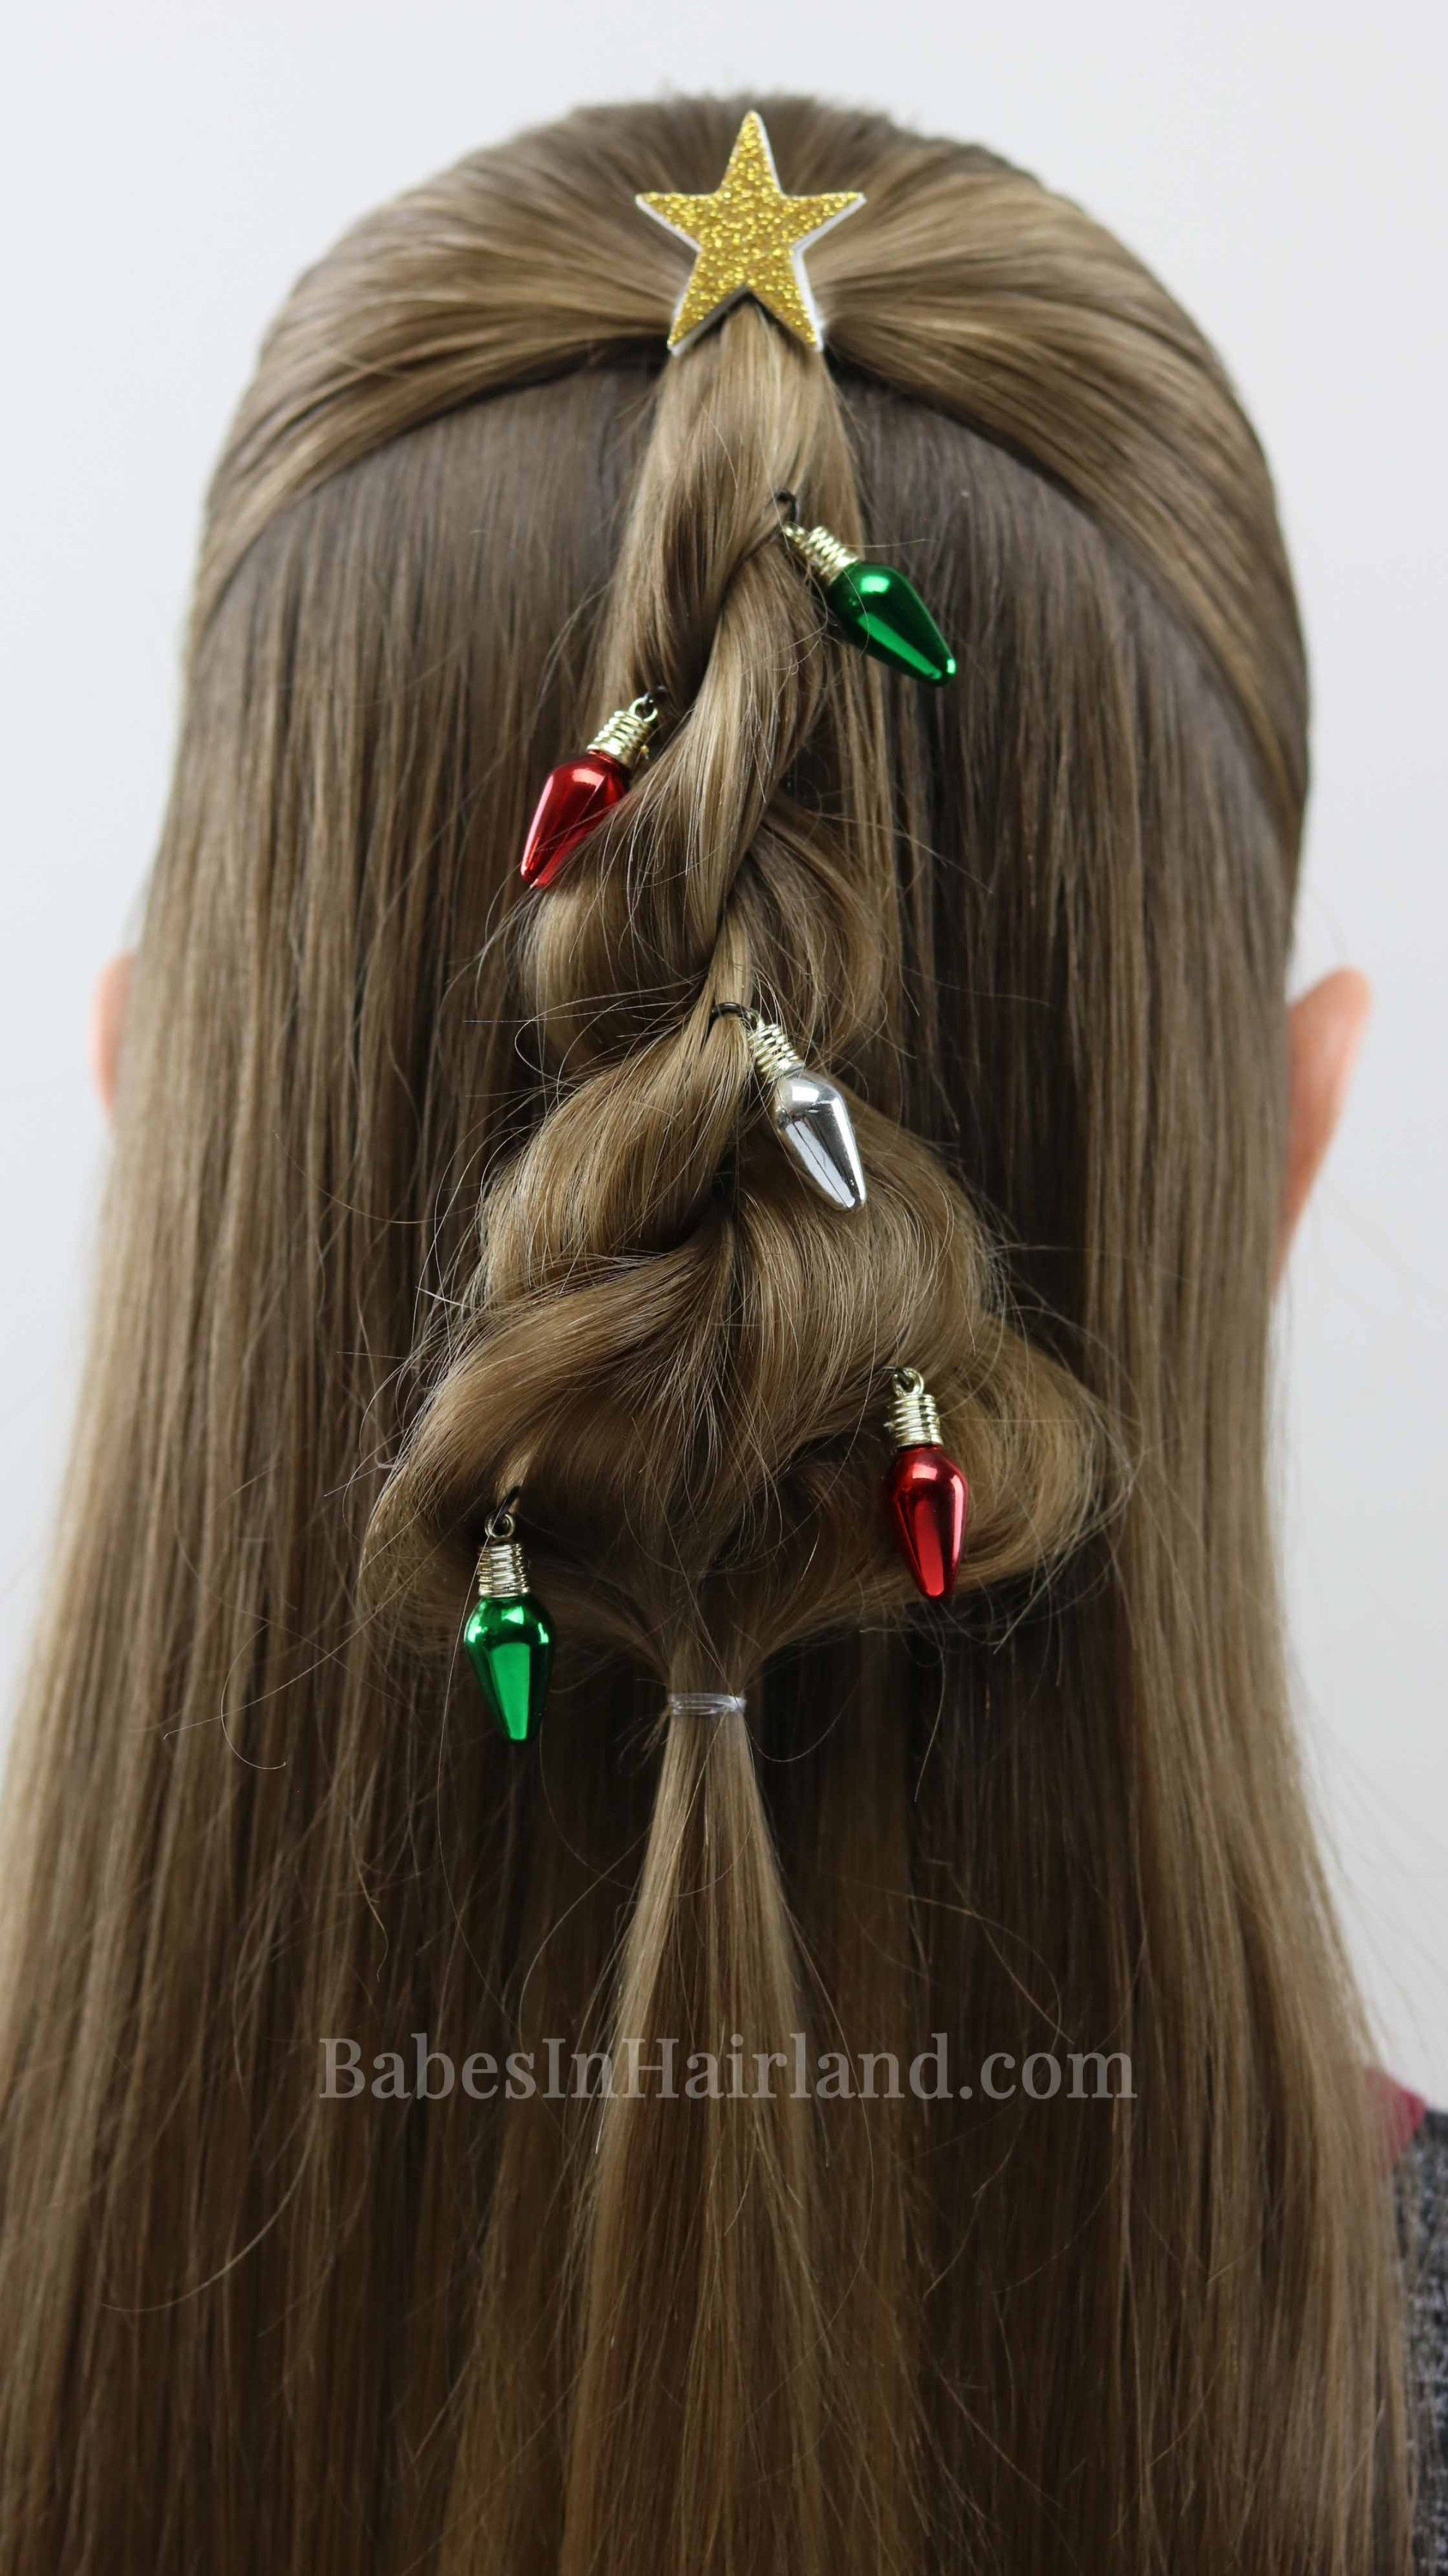 Decorate your hair for christmas too with this cute twisted